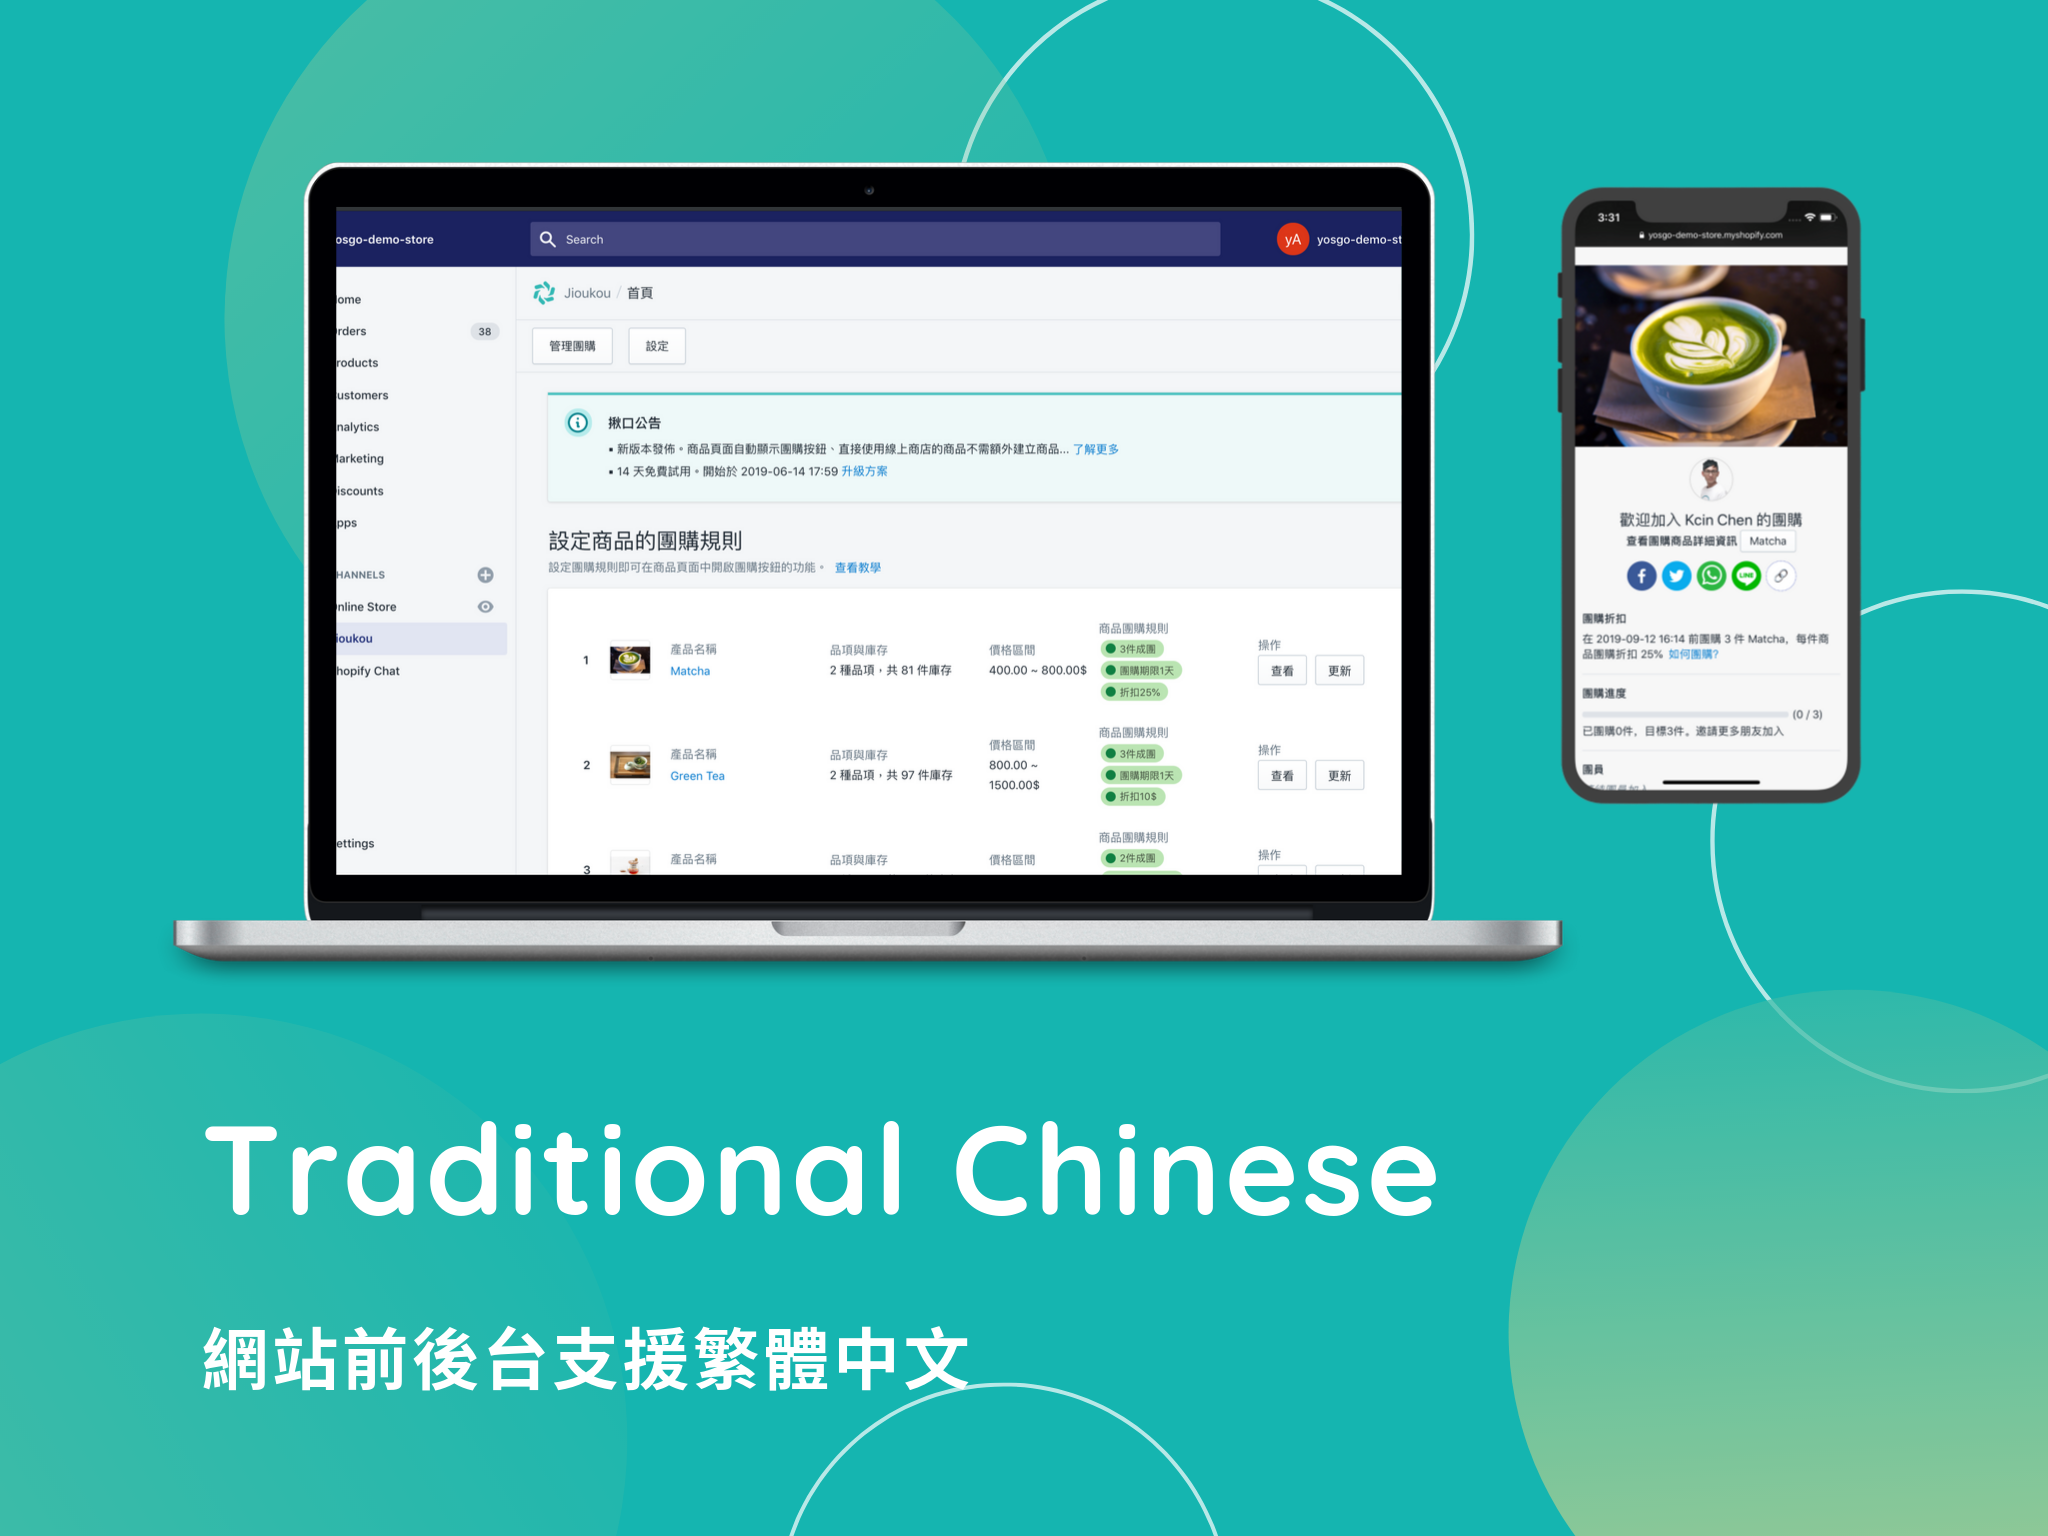 Traditional Chinese